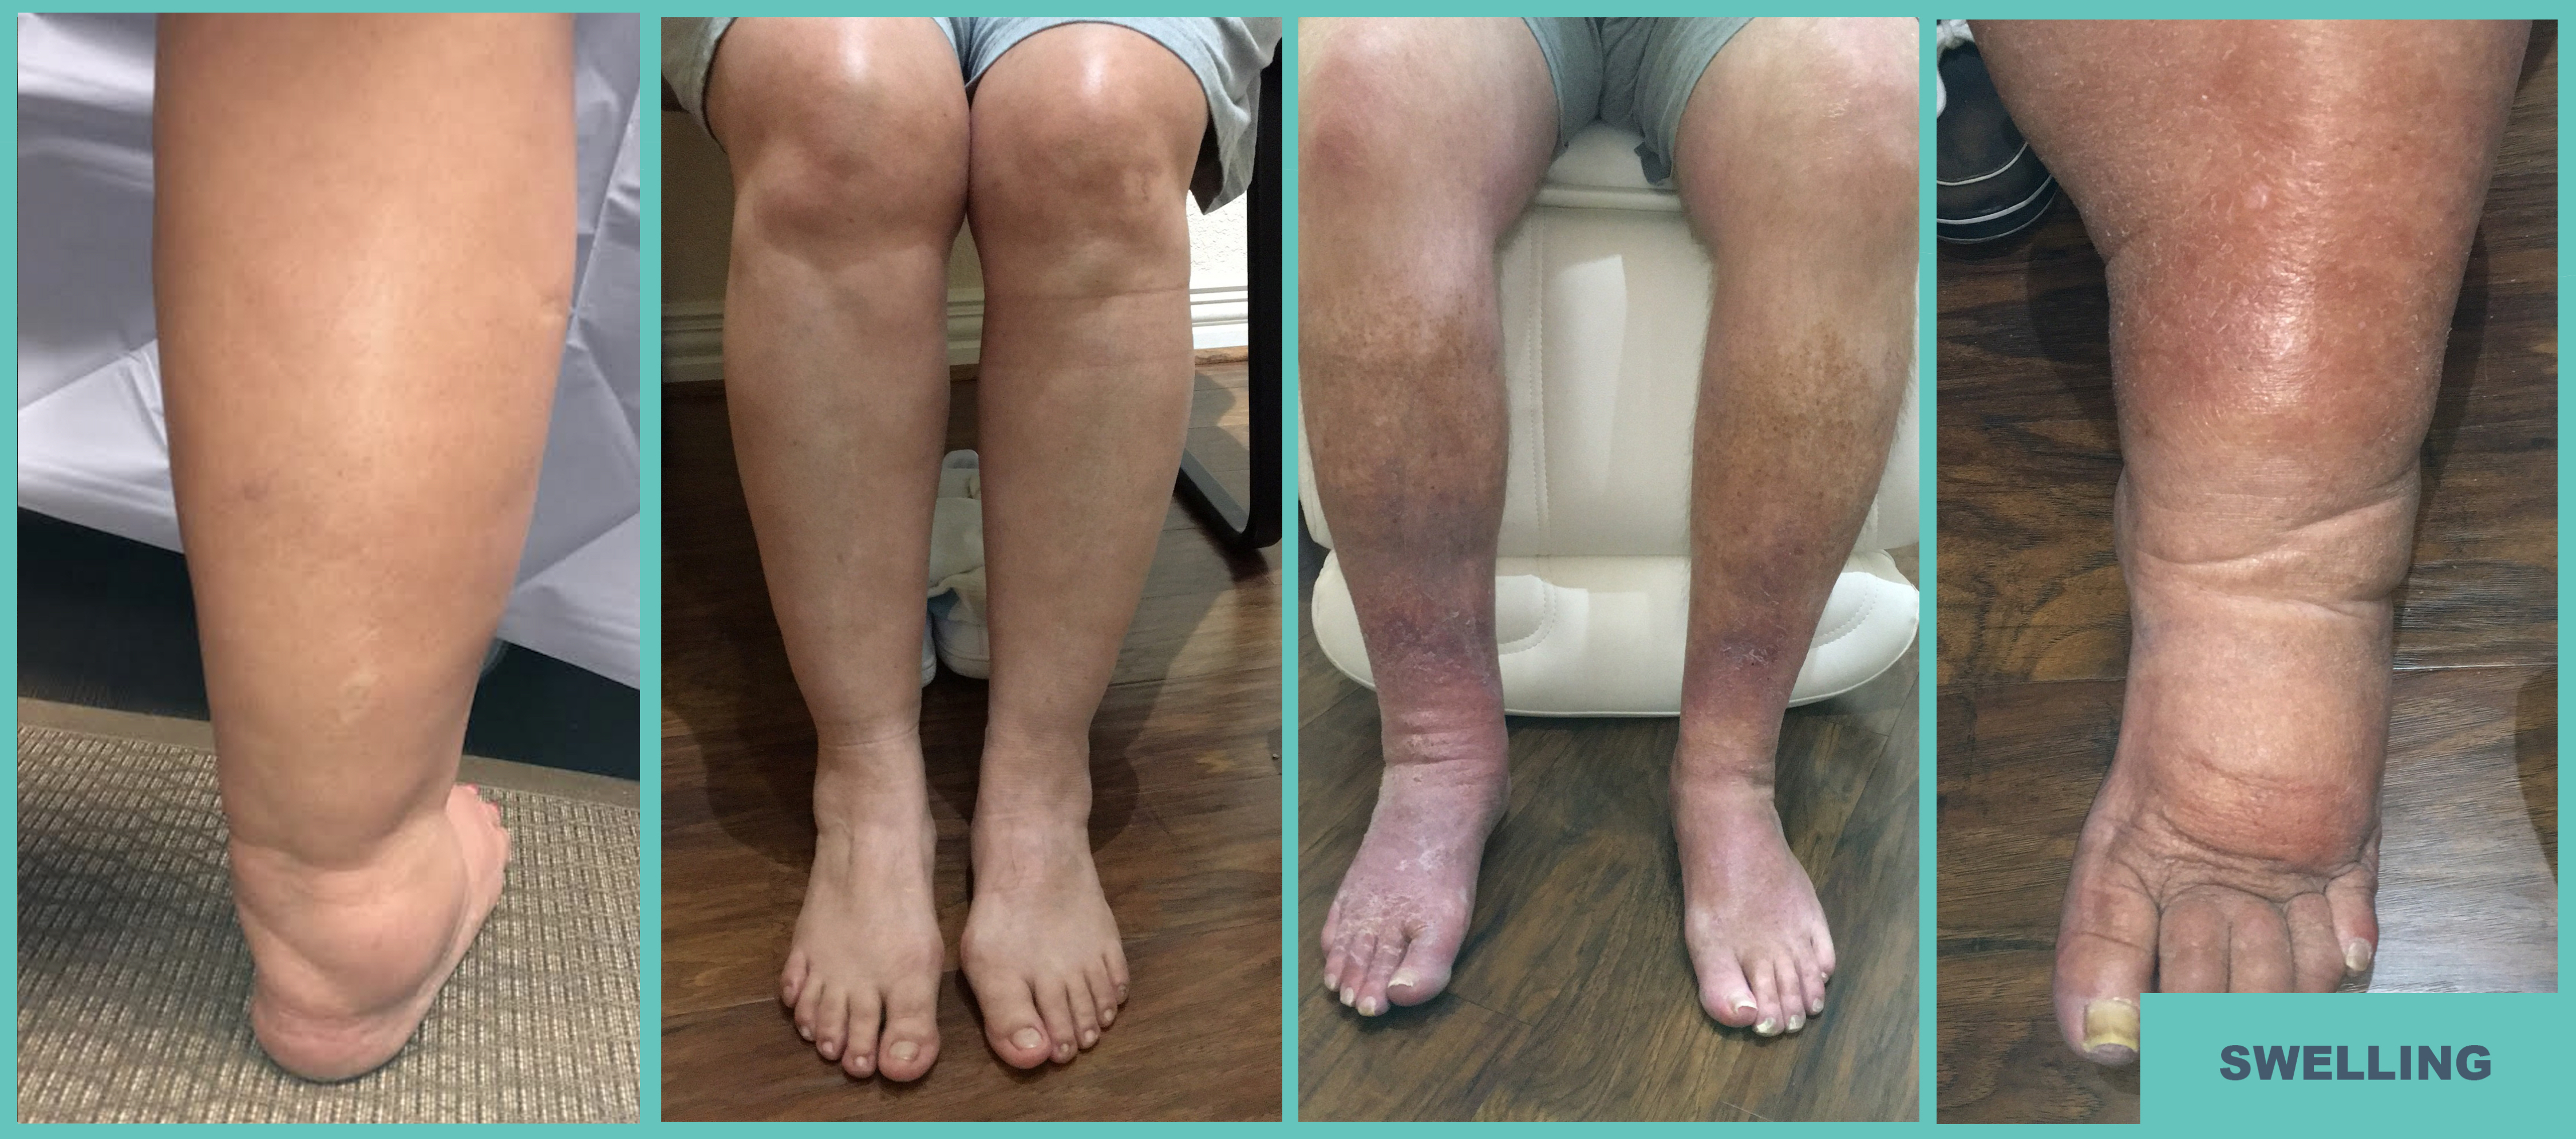 Atlas-Vein-Care-Swelling-2